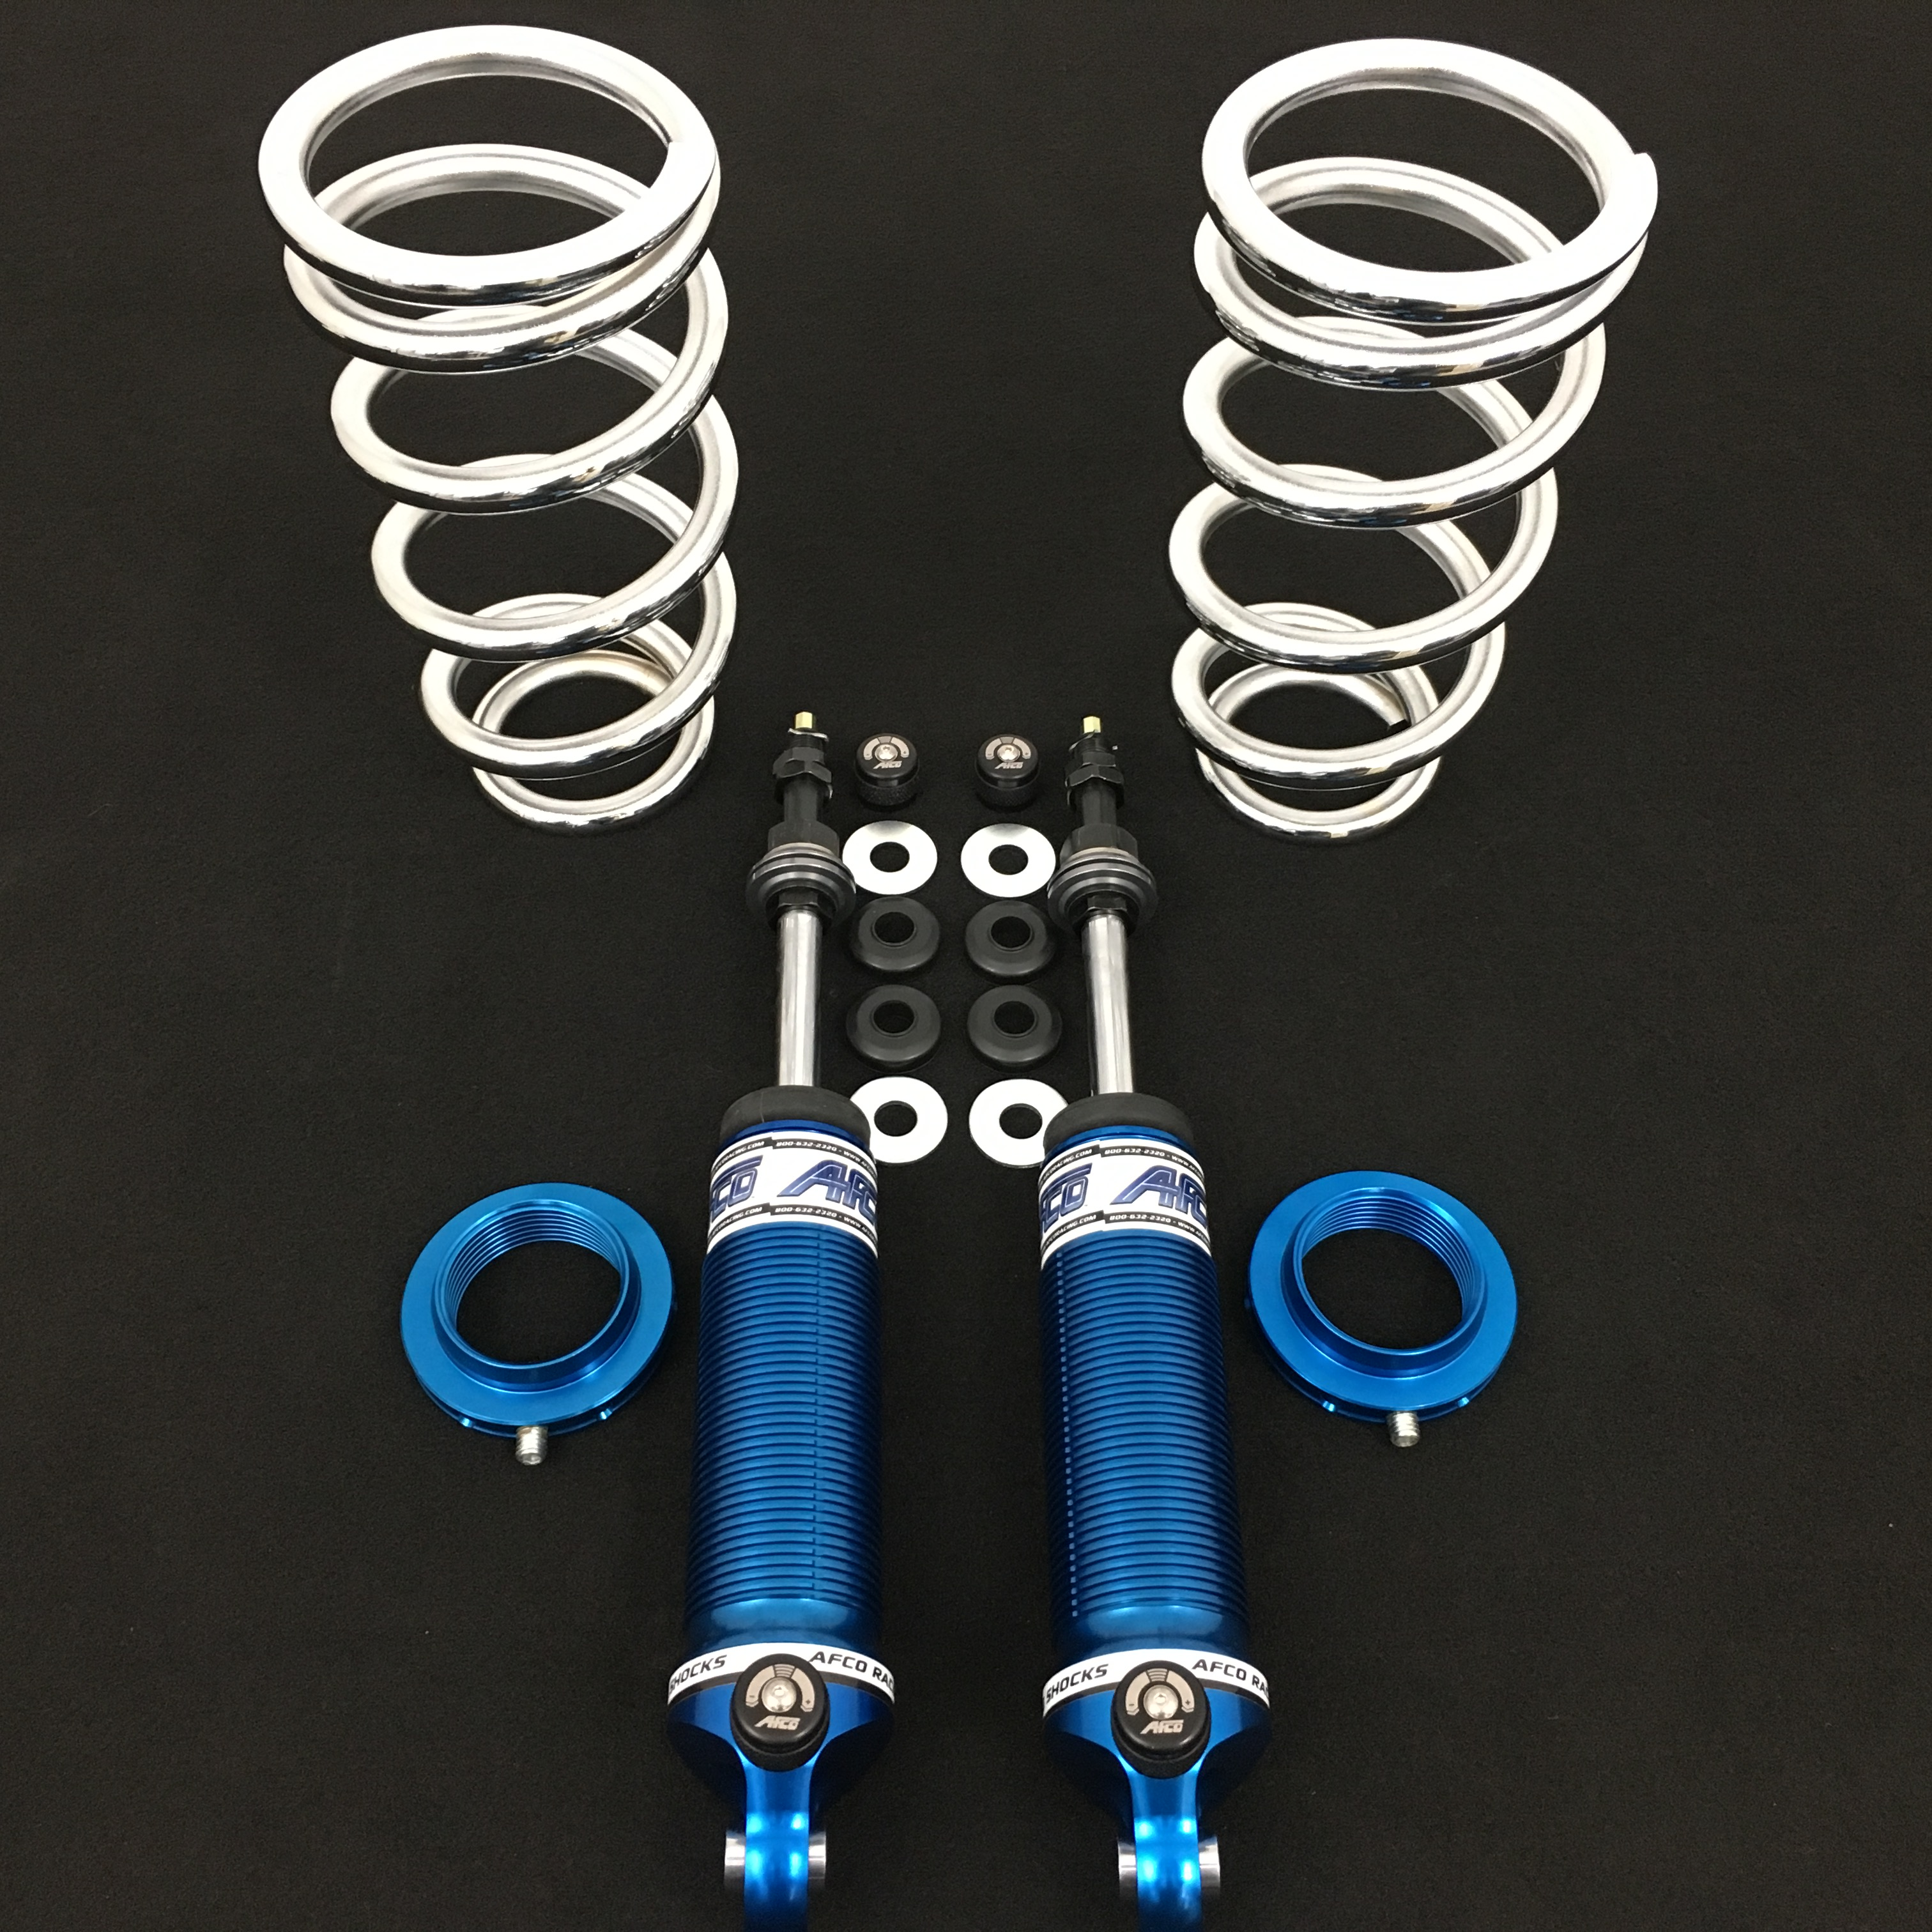 AFCO Double Adjustable Front Coil-Over Kit